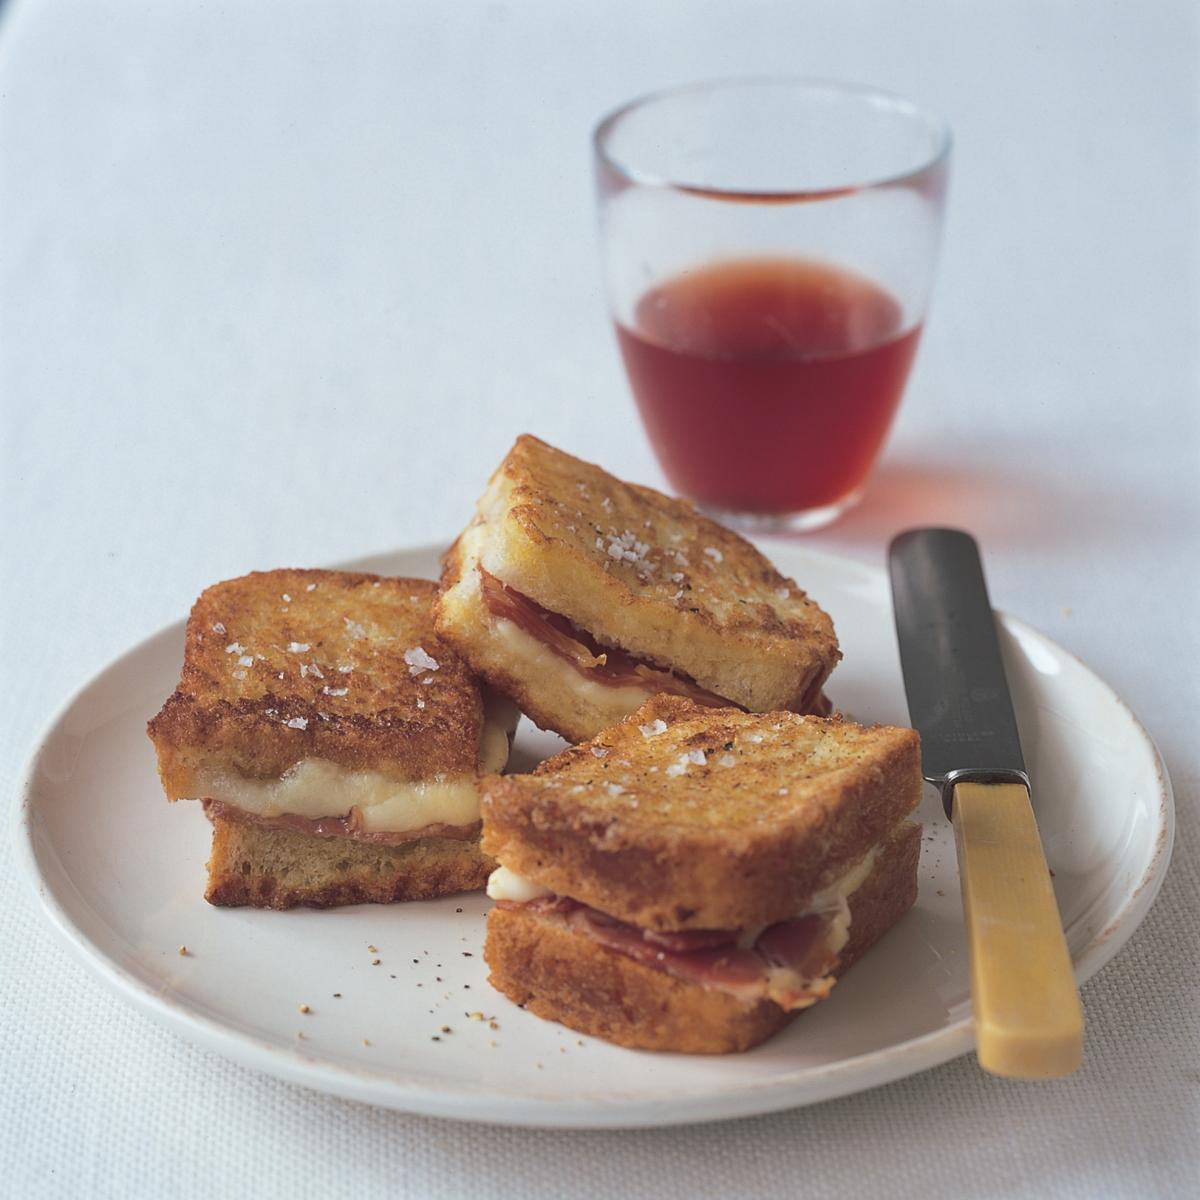 A picture of Delia's Mozzarella in Carrozza recipe